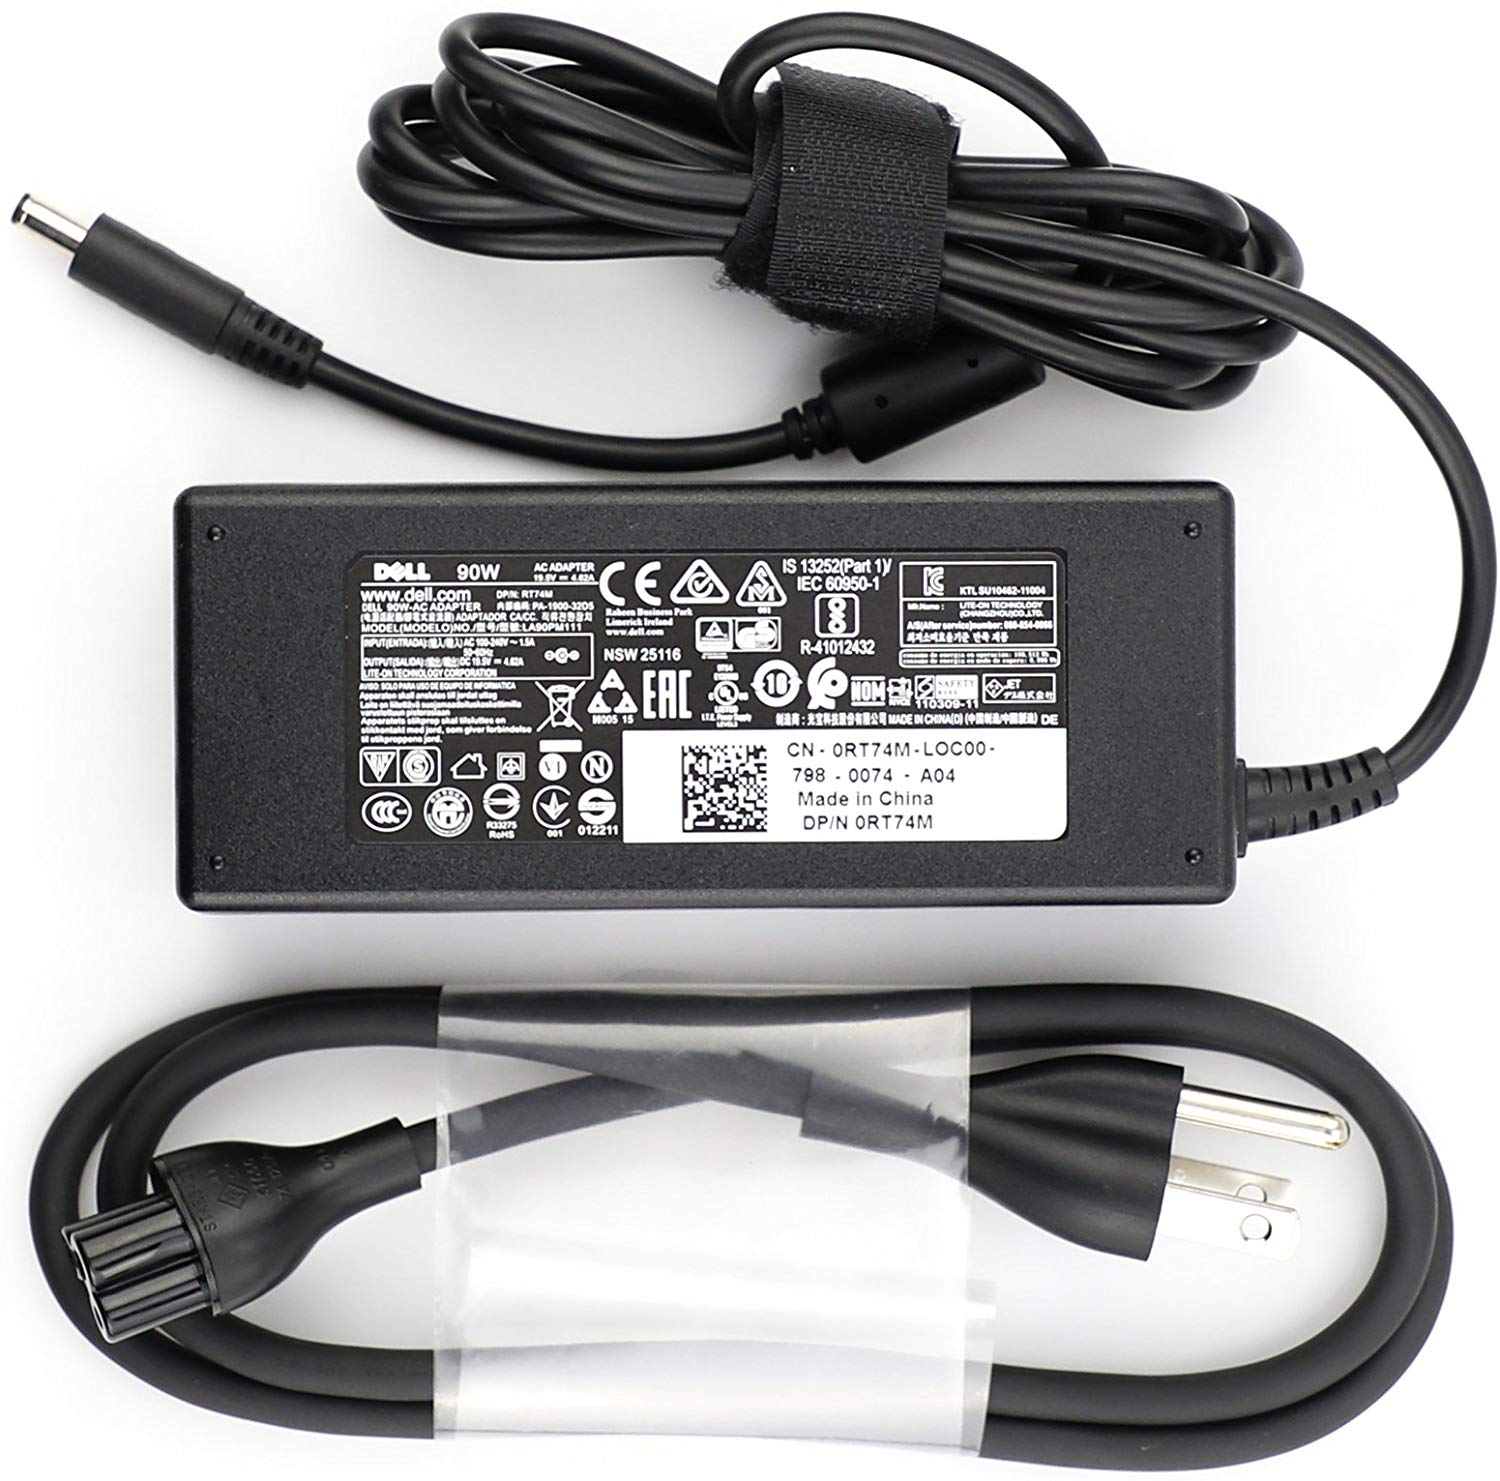 Laptop Adapter best price in Karachi Adapter Dell 19v5 - 4a62 | XPS 90w  (4.5*3.0) Old Shape (ORG)